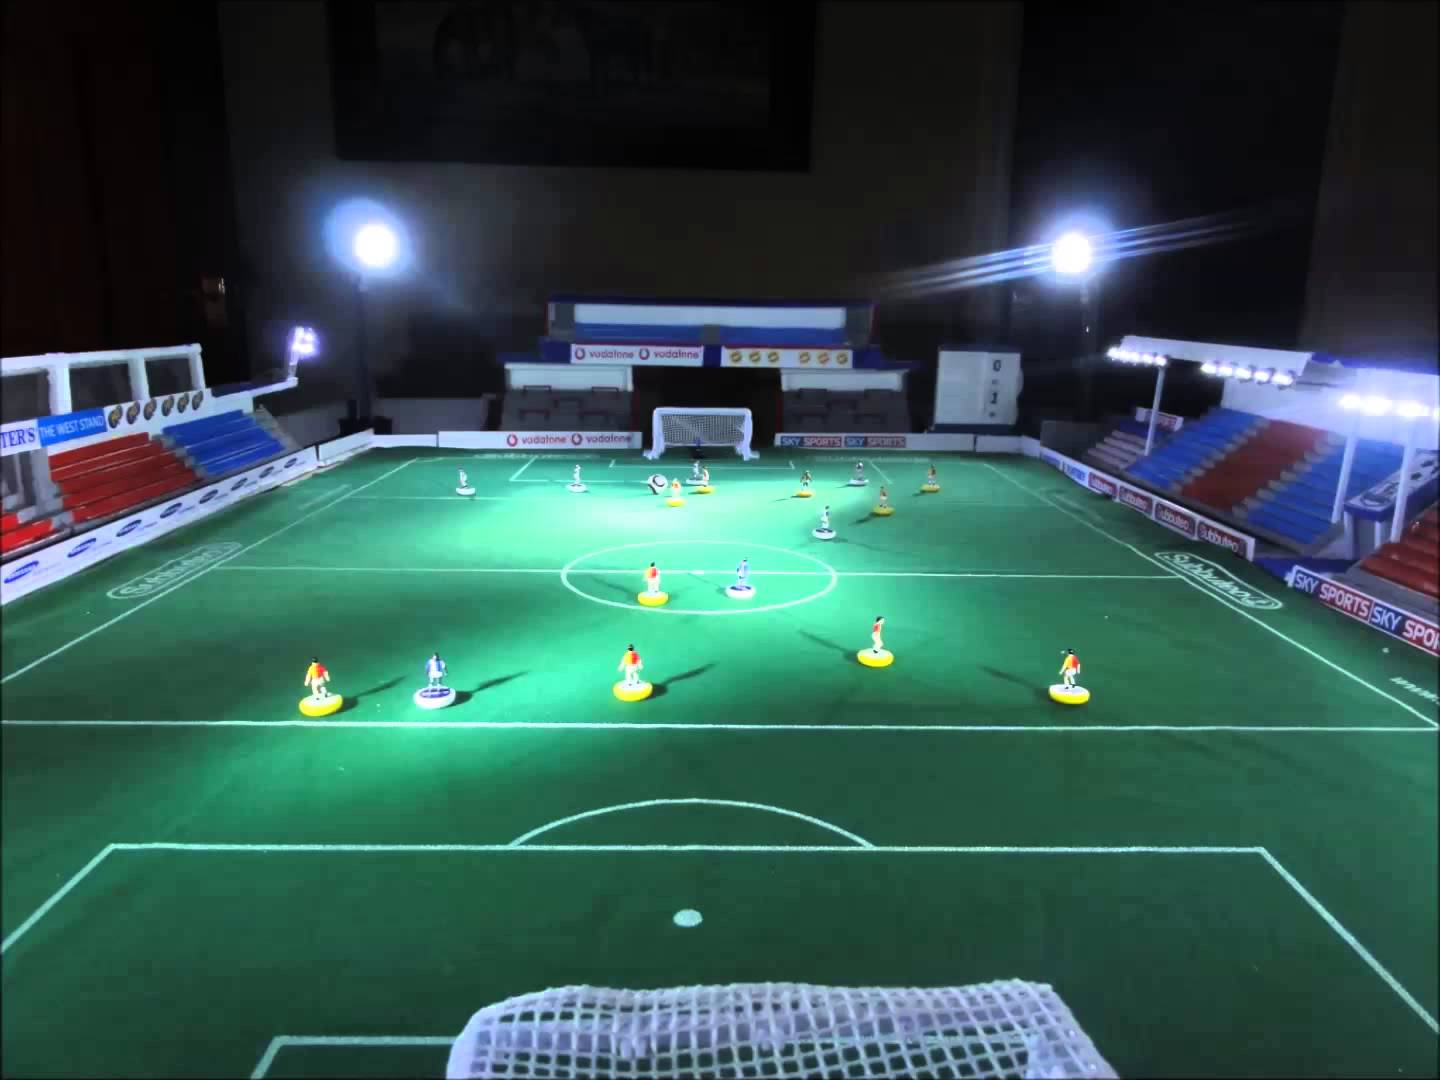 Listen to the Official Subbuteo song